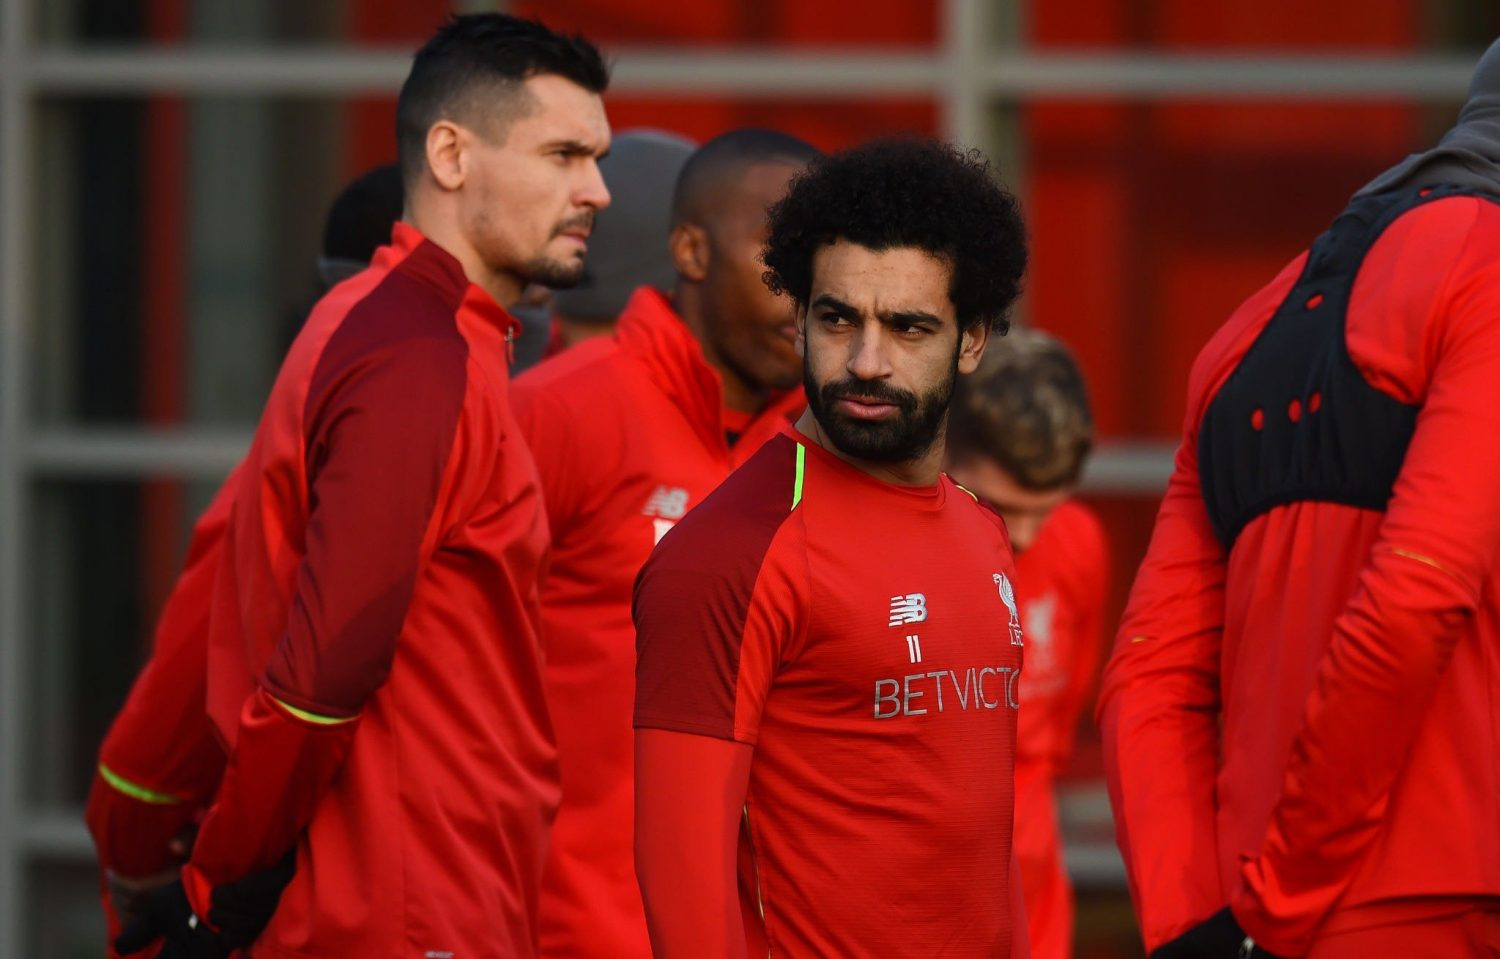 Watch: Reds train at Melwood ahead of visit to Watford